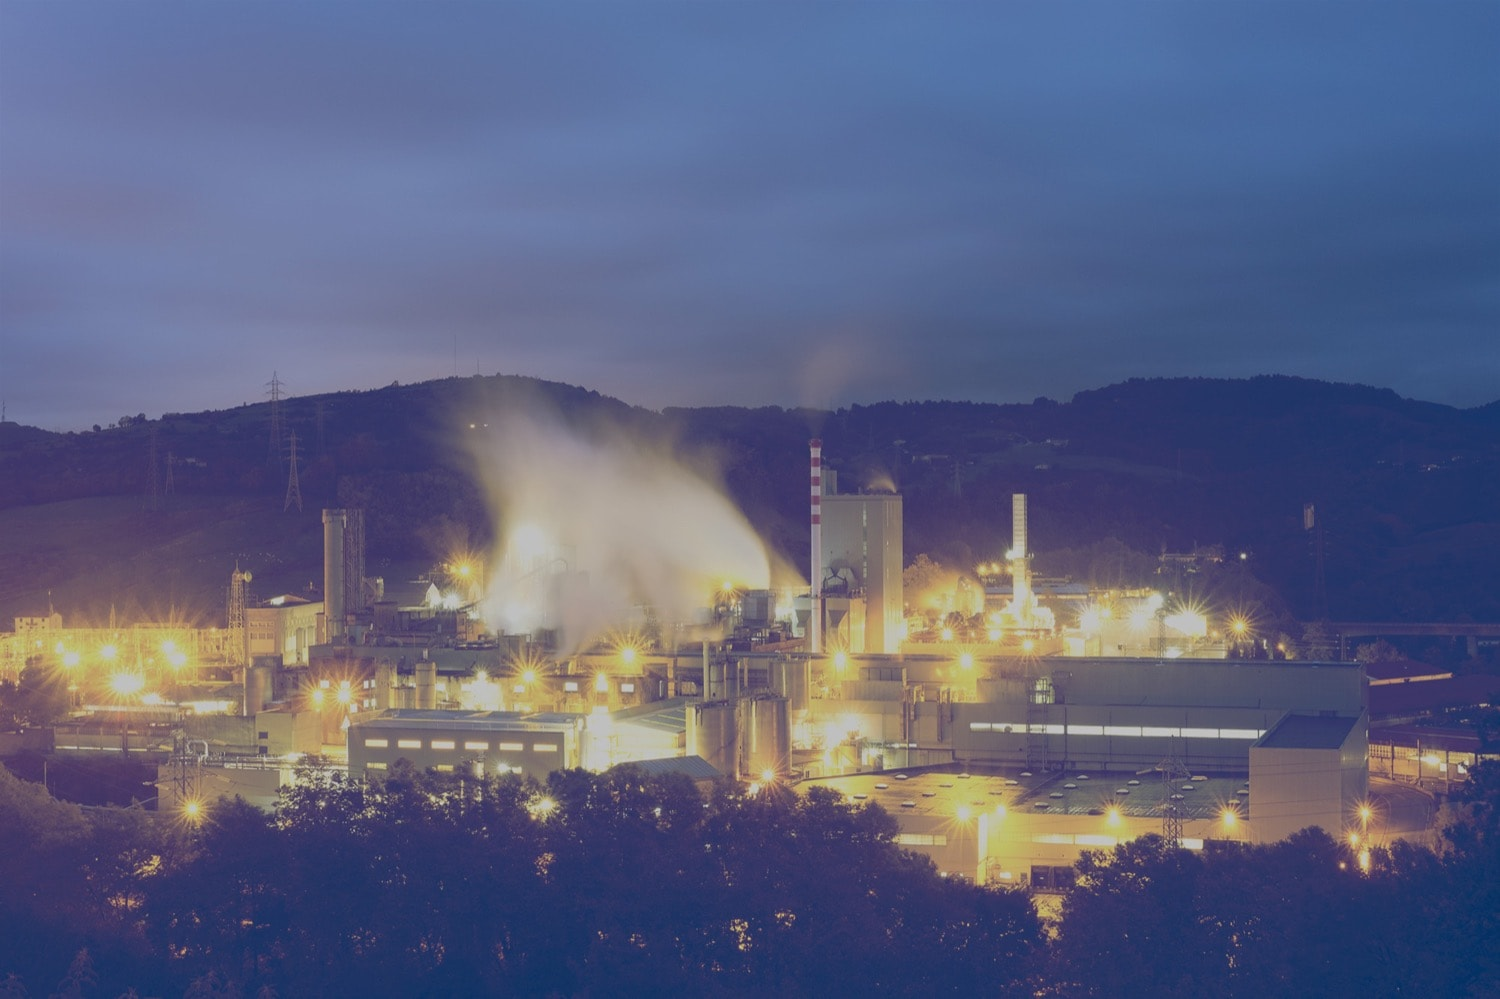 Panoramic view of an oil refinery at night.